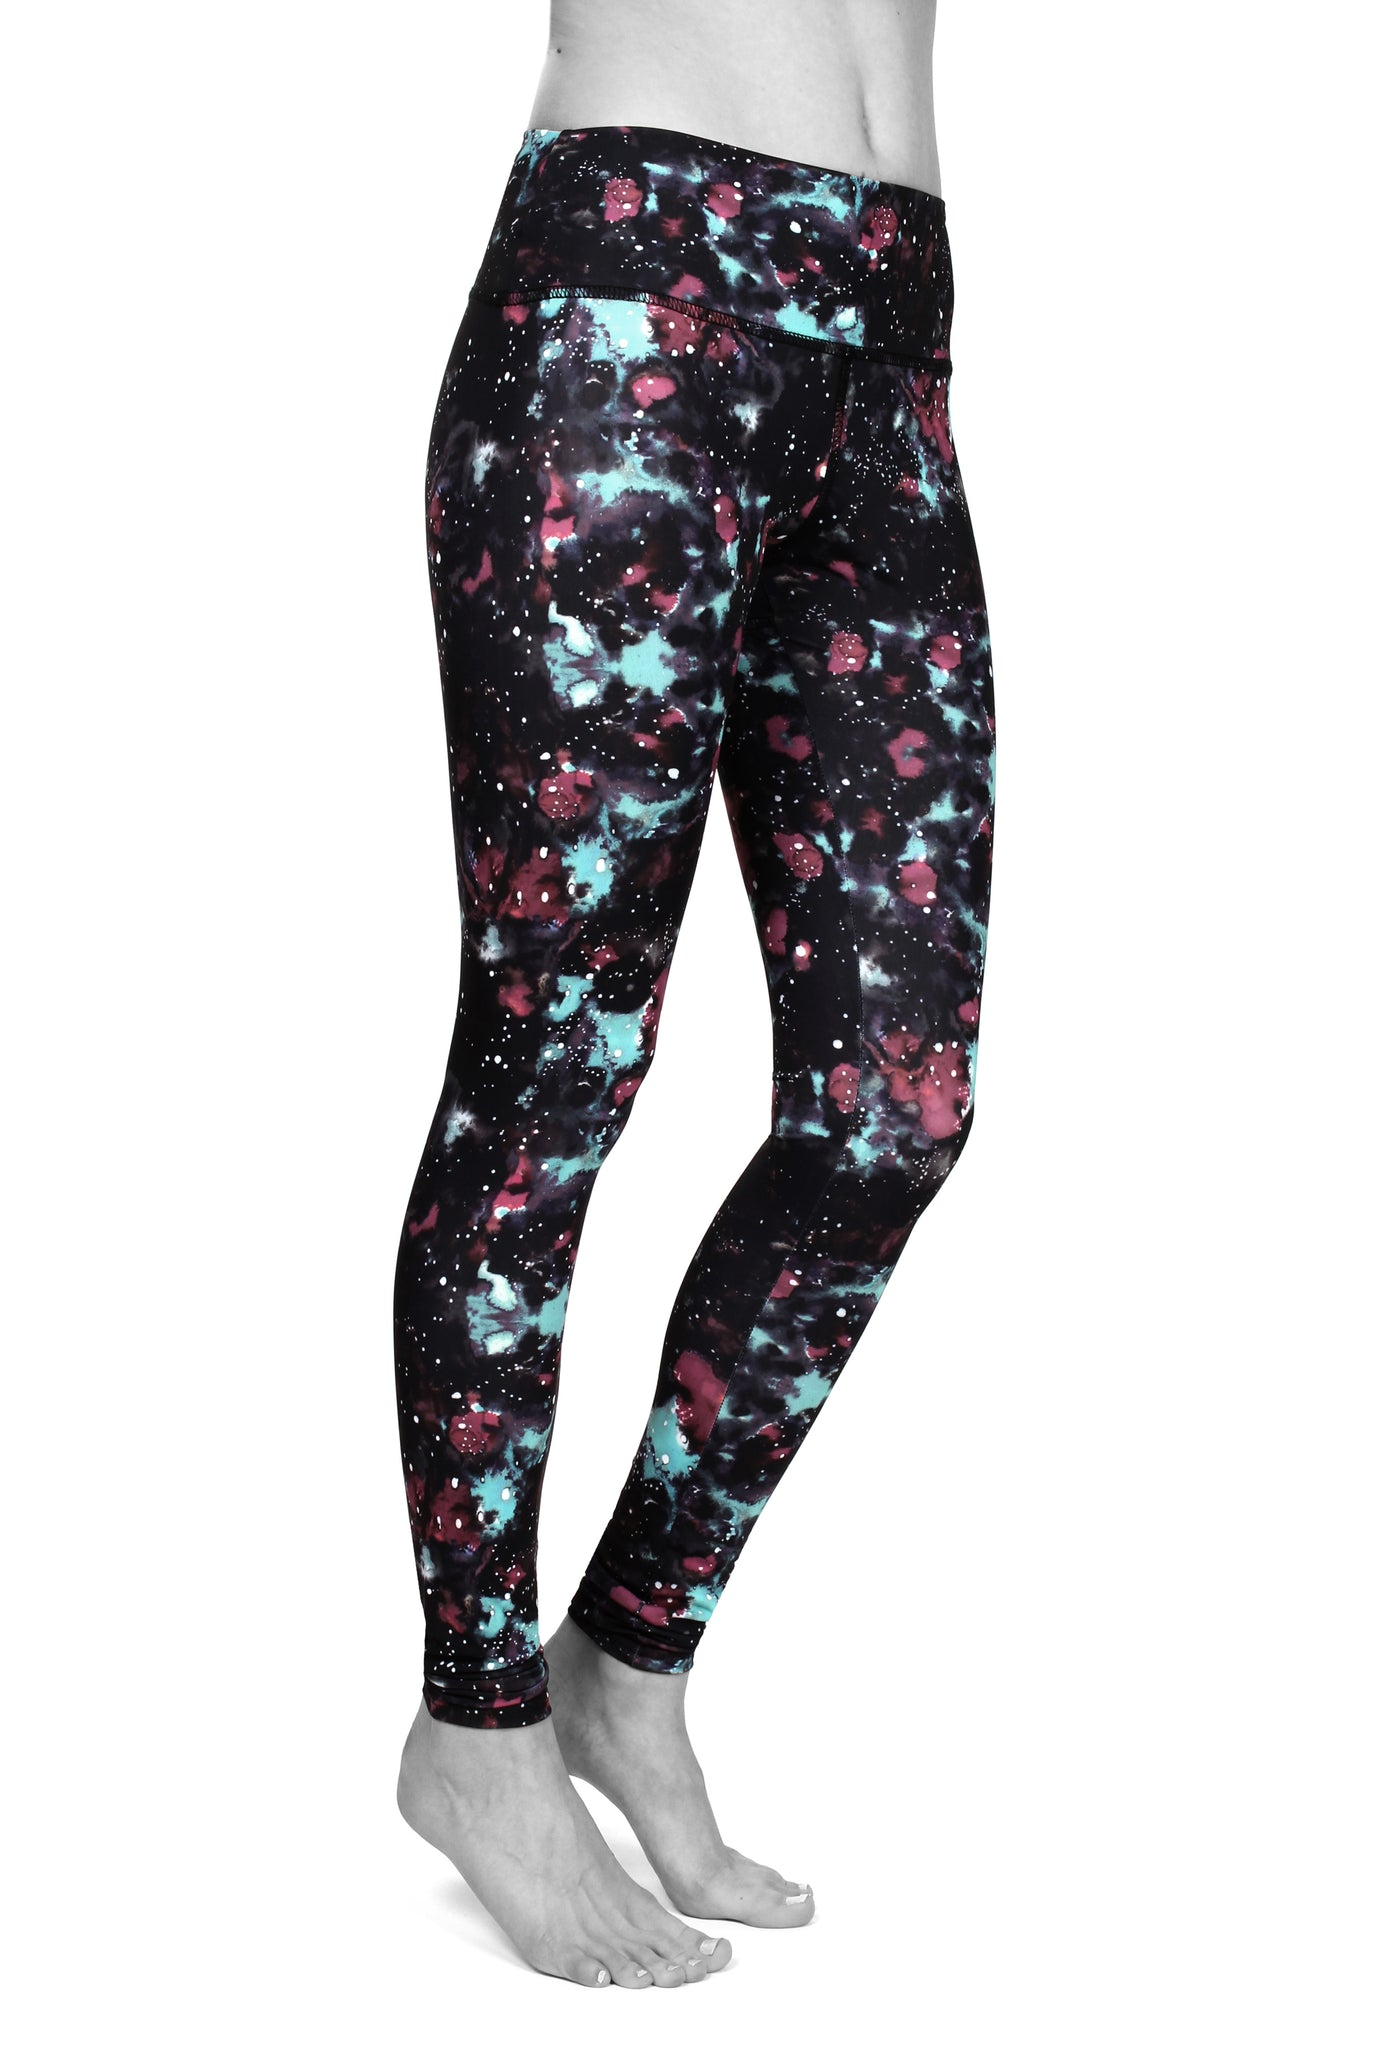 Sacred galaxy legging